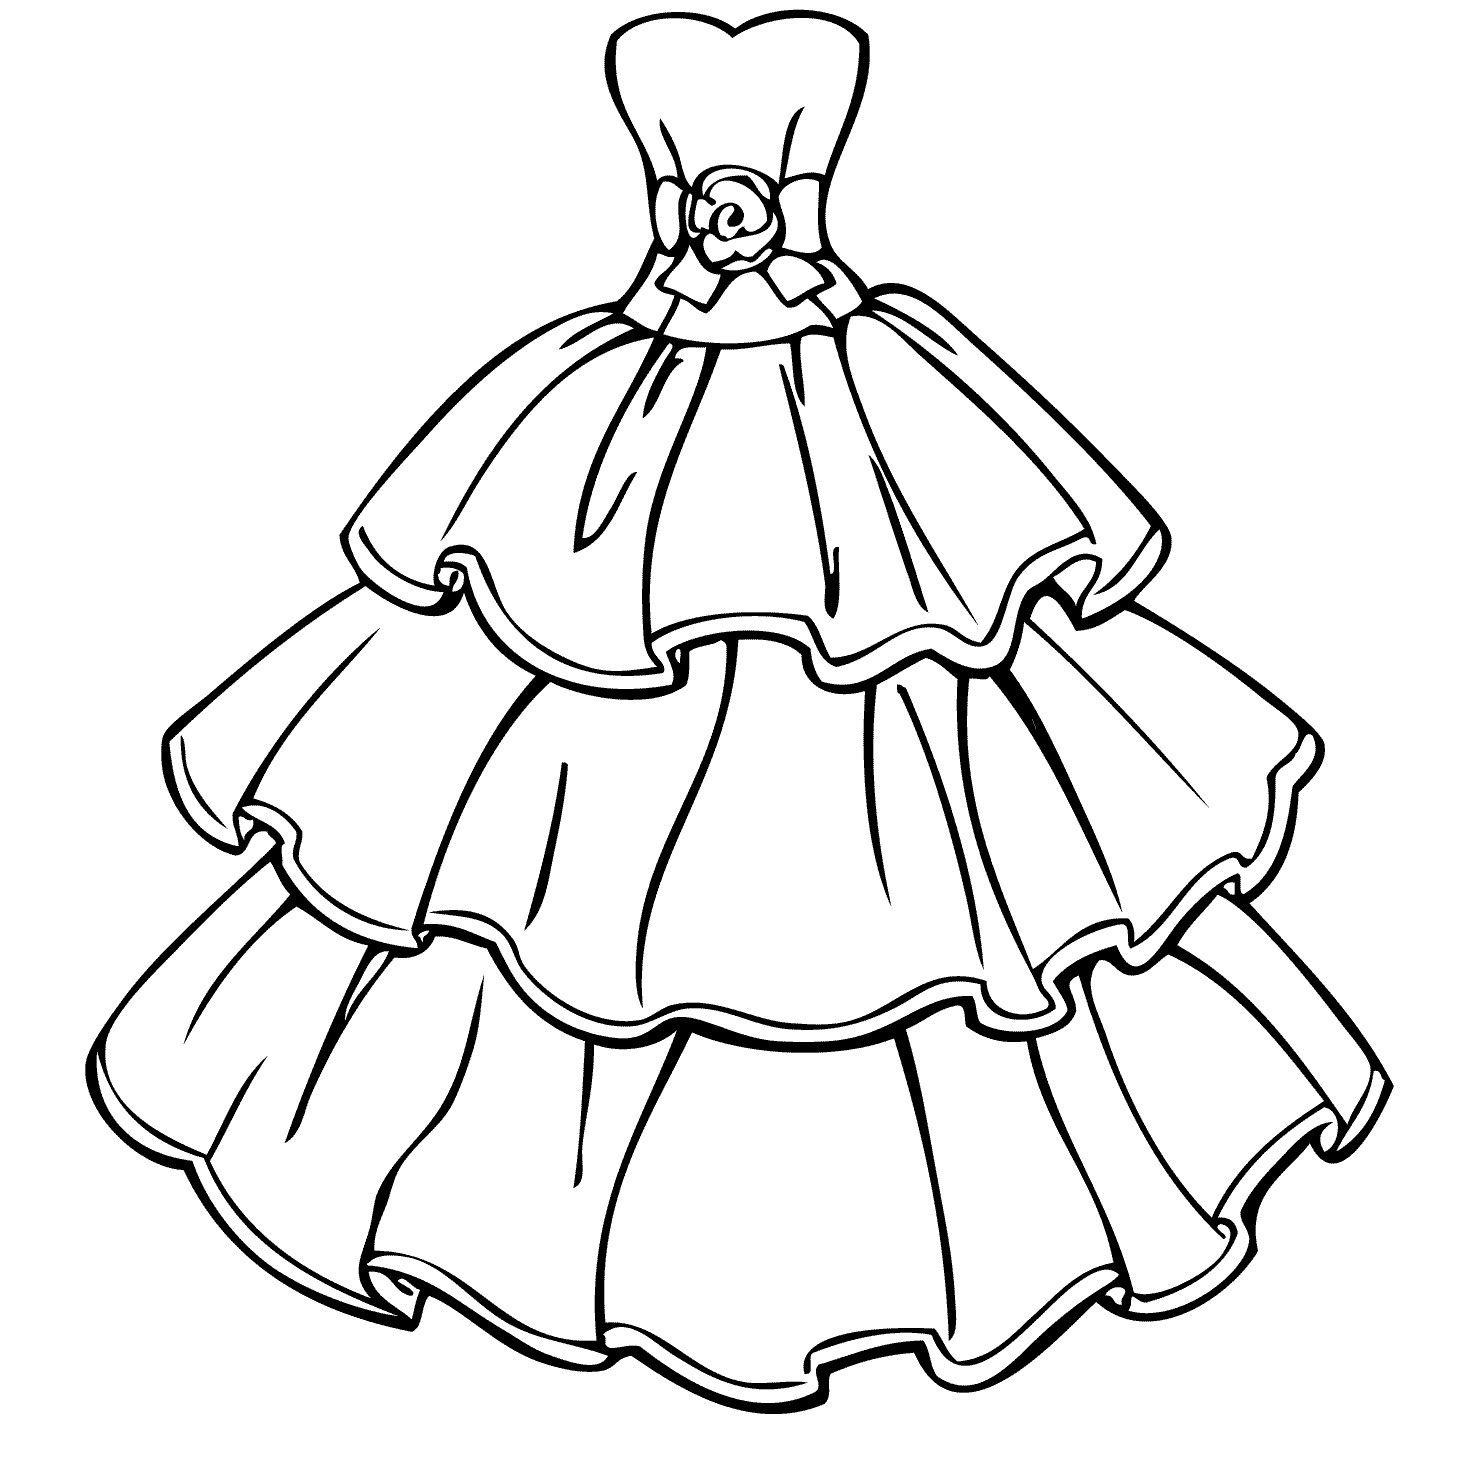 Princess gown coloring pages ~ Princess Dress Coloring Page – Through the thousands of ...